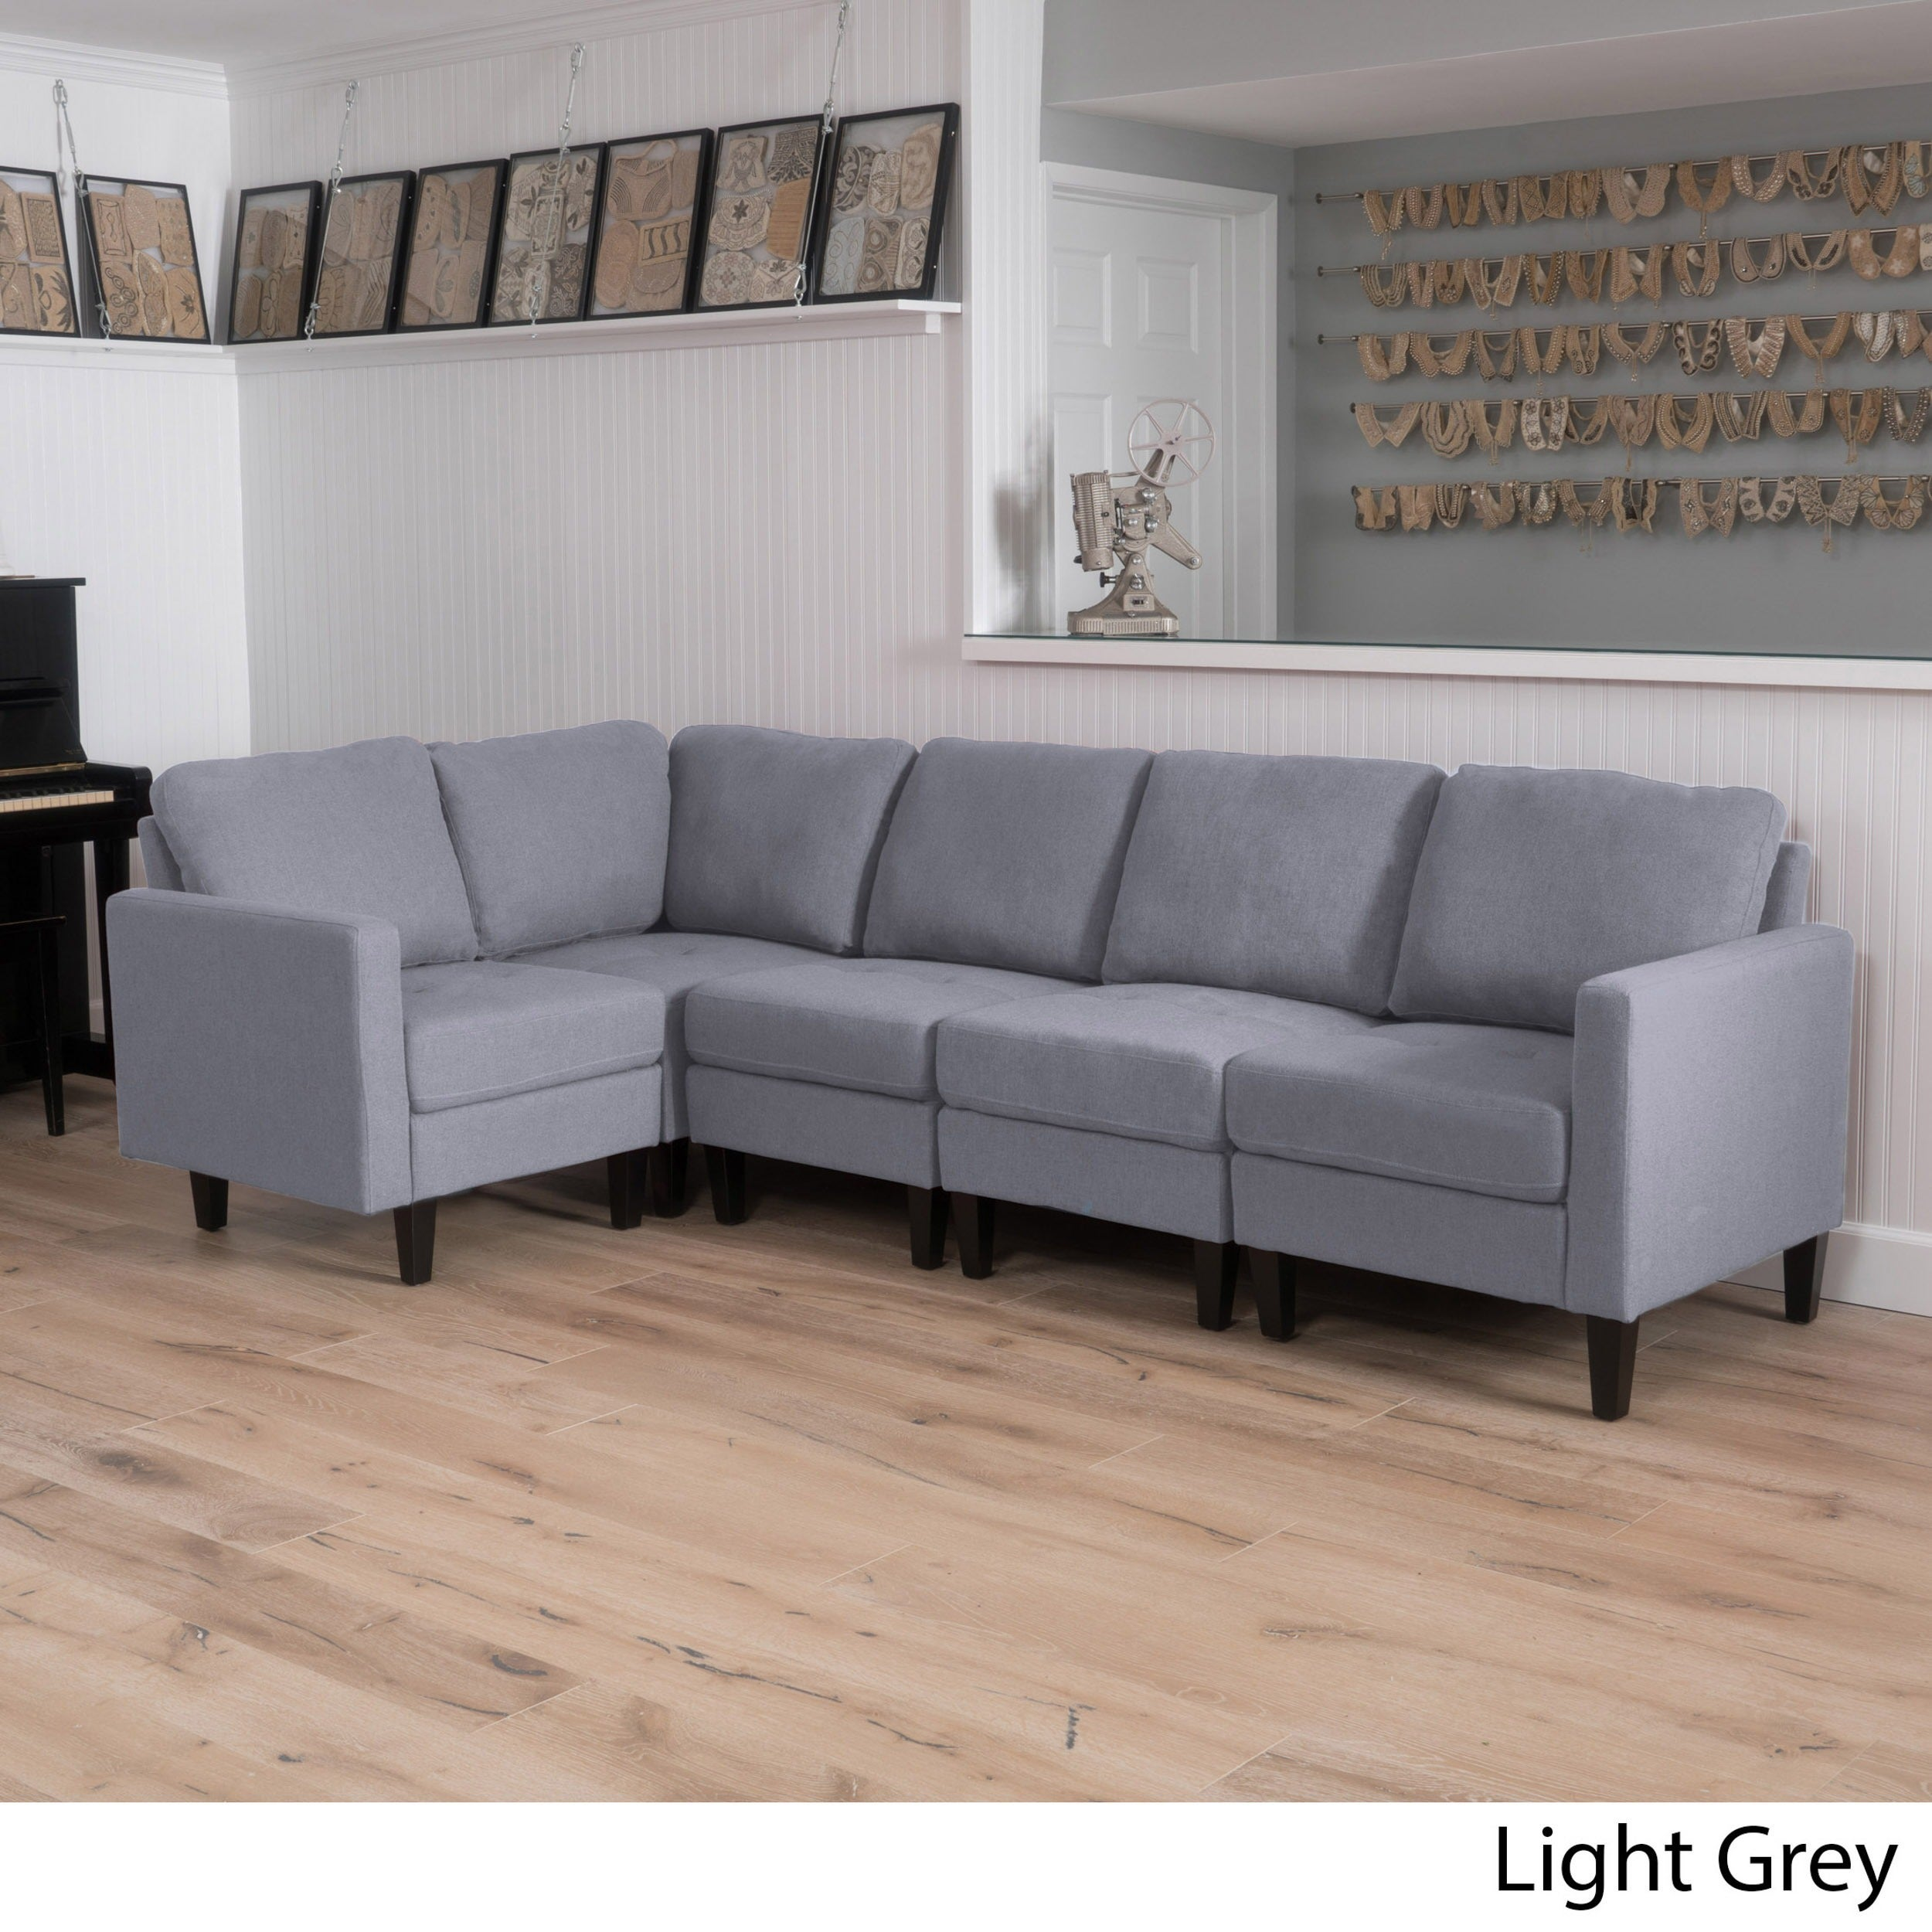 Sectional Gray Sofa Set: Sectional Sofa Set Elegant Separate Pieces Lockable Fabric